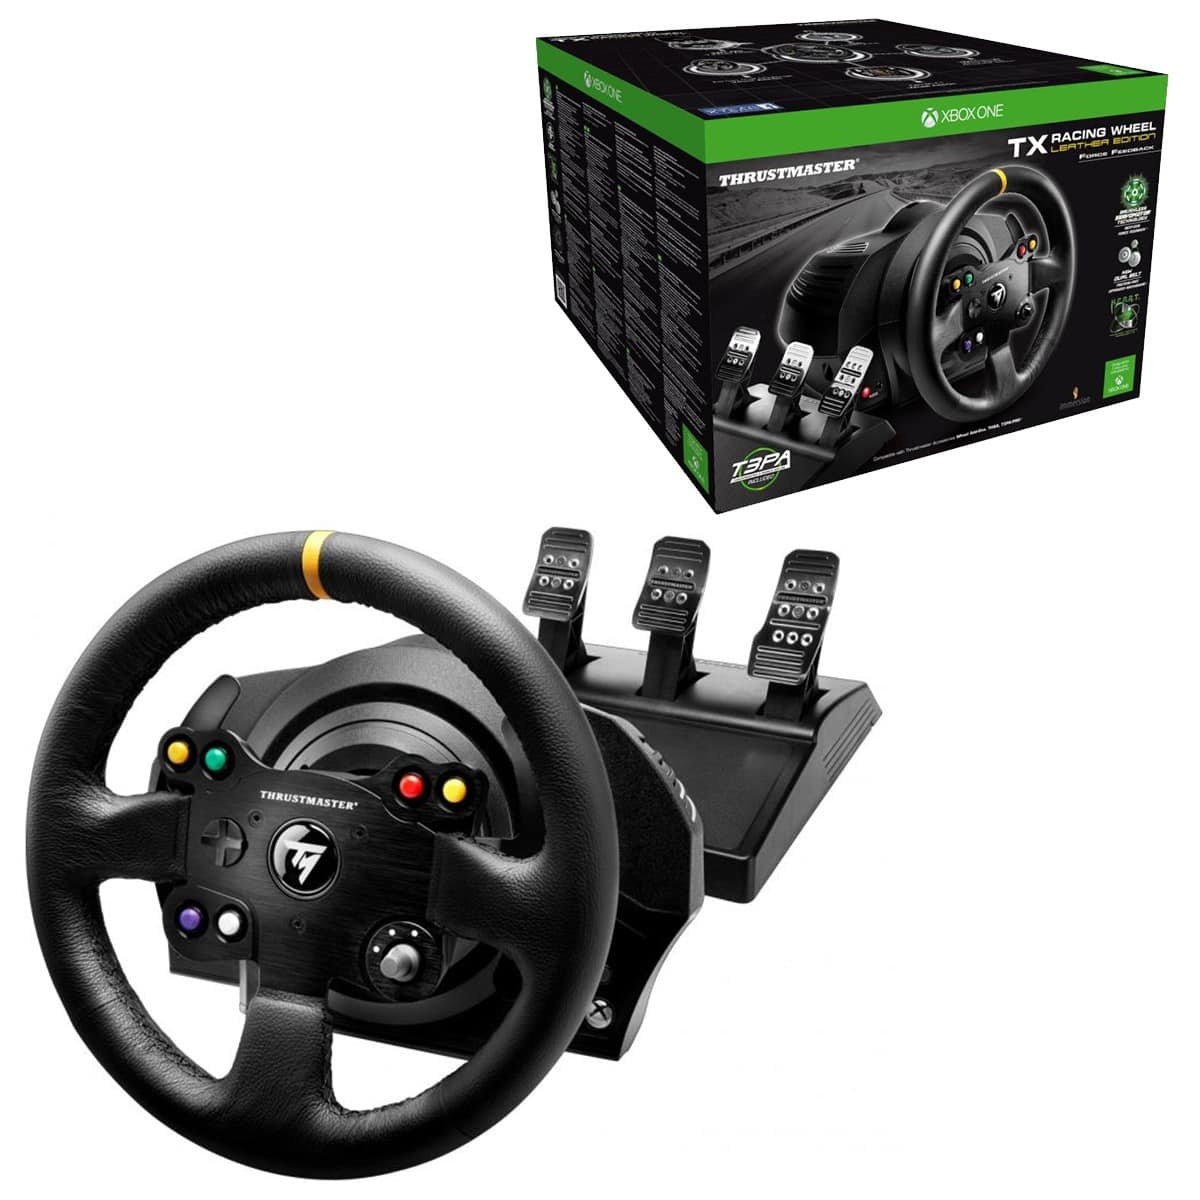 Thrustmaster VG TX Racing Wheel Leather Edition Premium Official Xbox One Racing Wheel for Xbox One and PC $357.49. Also T3PA Pro Pedals $97.49 at Best Buy.